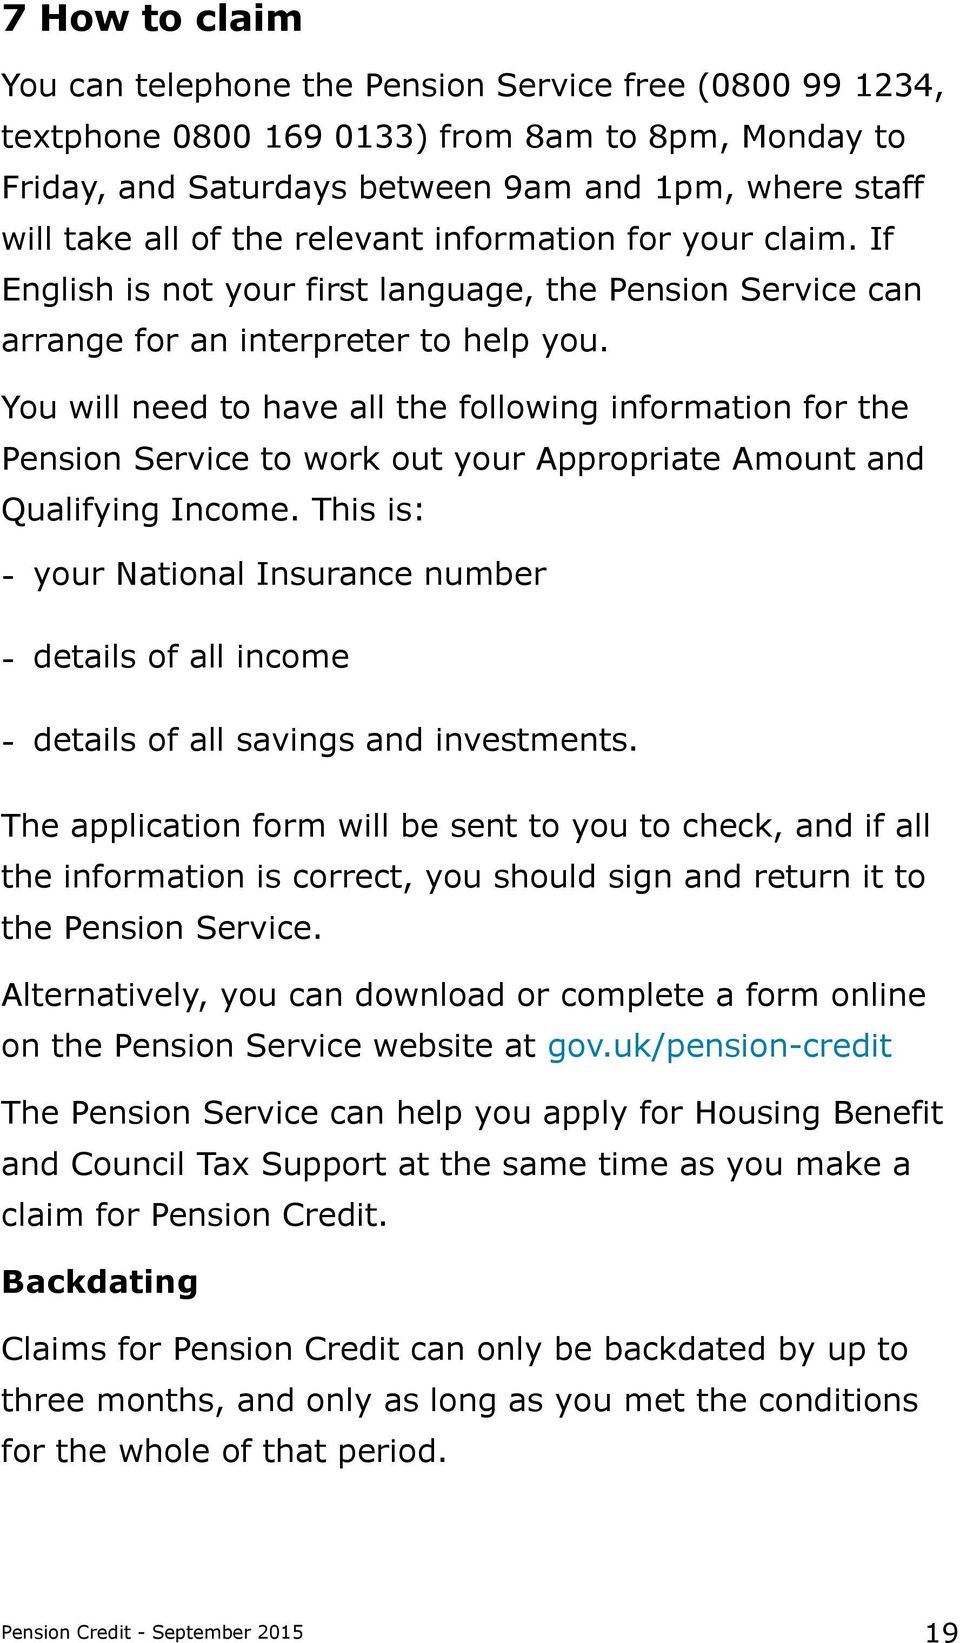 You will need to have all the following information for the Pension Service to work out your Appropriate Amount and Qualifying Income.